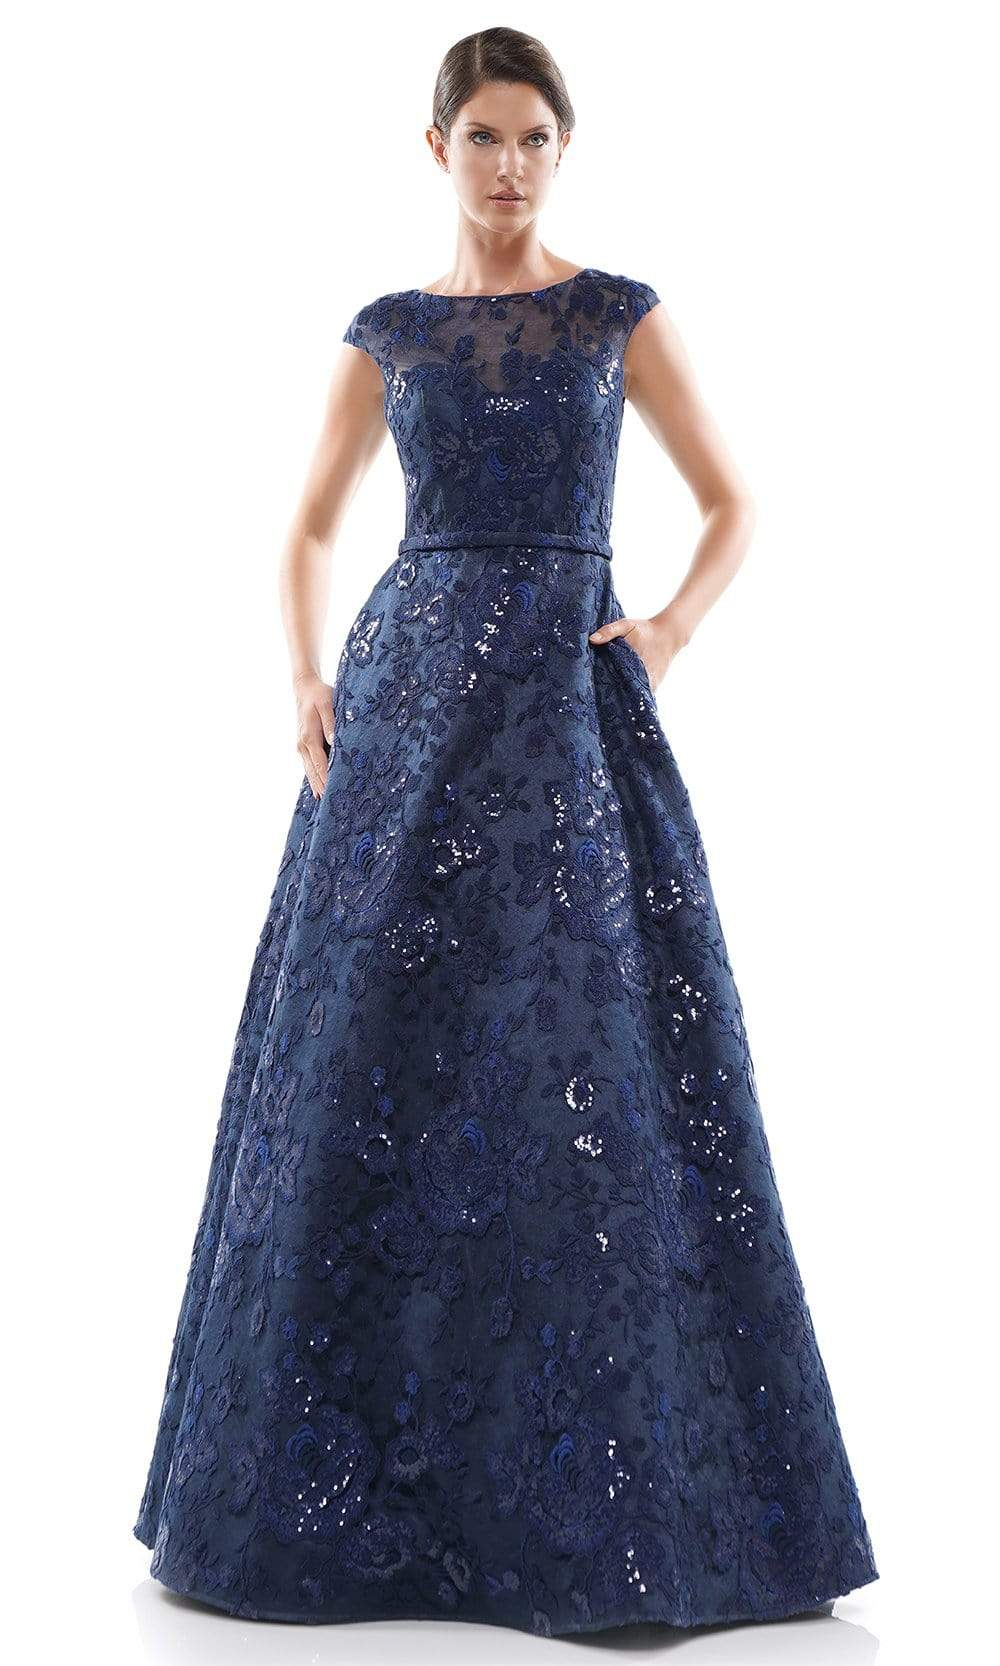 Marsoni By Colors - MV1012 Sequined Rosette Embroidered Long Gown Mother of the Bride Dresses 4 / Navy